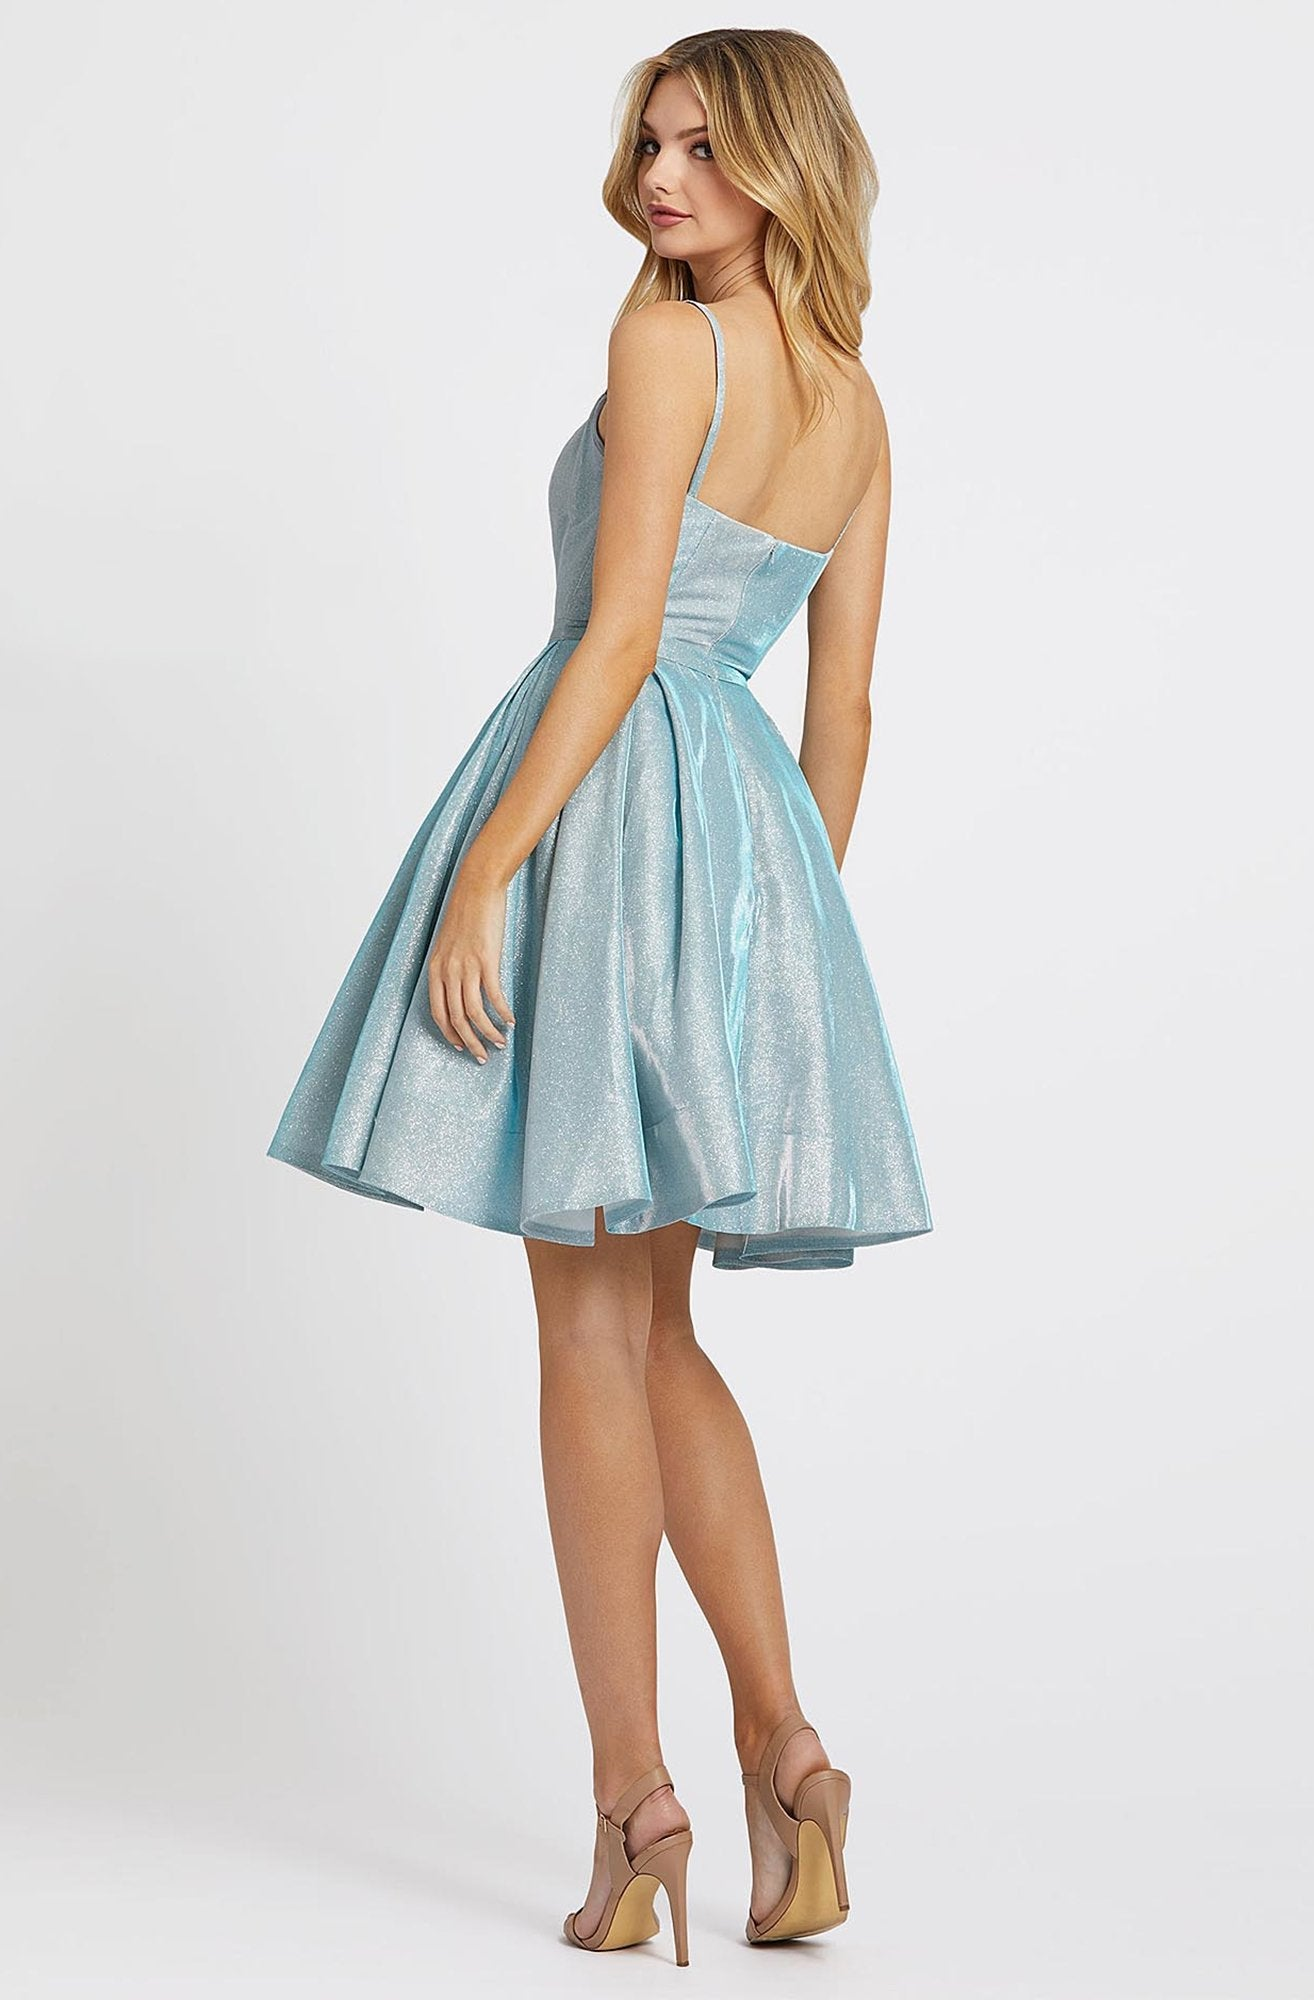 Ieena Duggal - 25982I Fitted Scoop A-Line Cocktail Dress in Blue